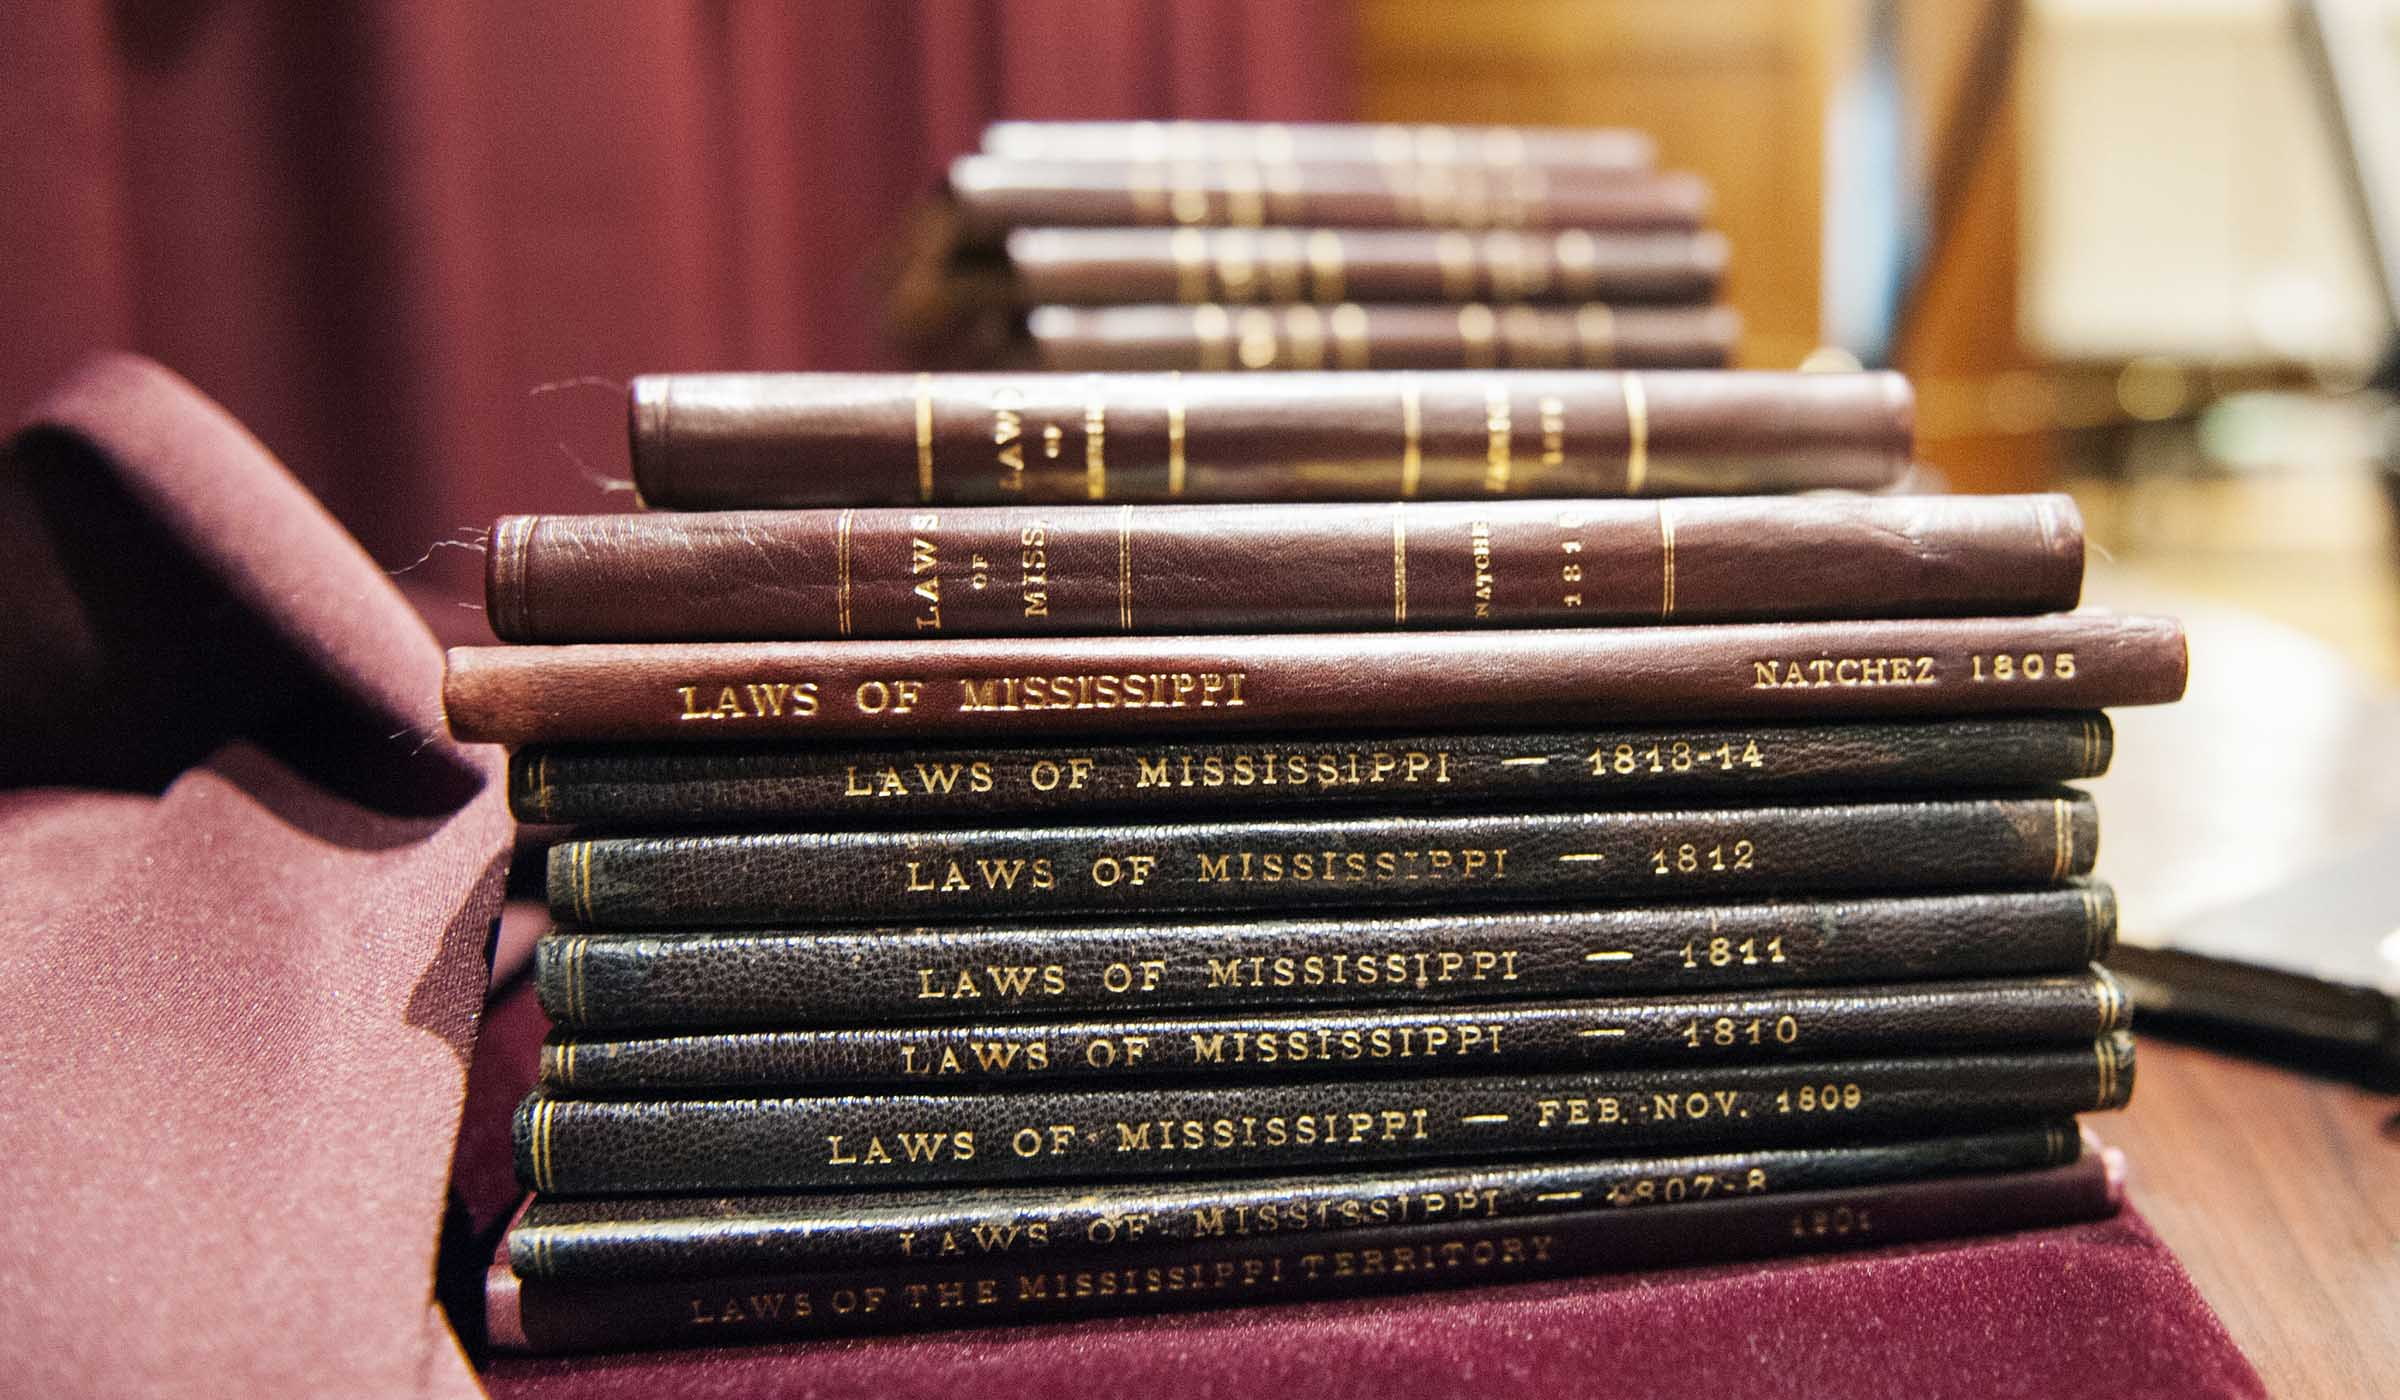 A stack of leather bound law books.